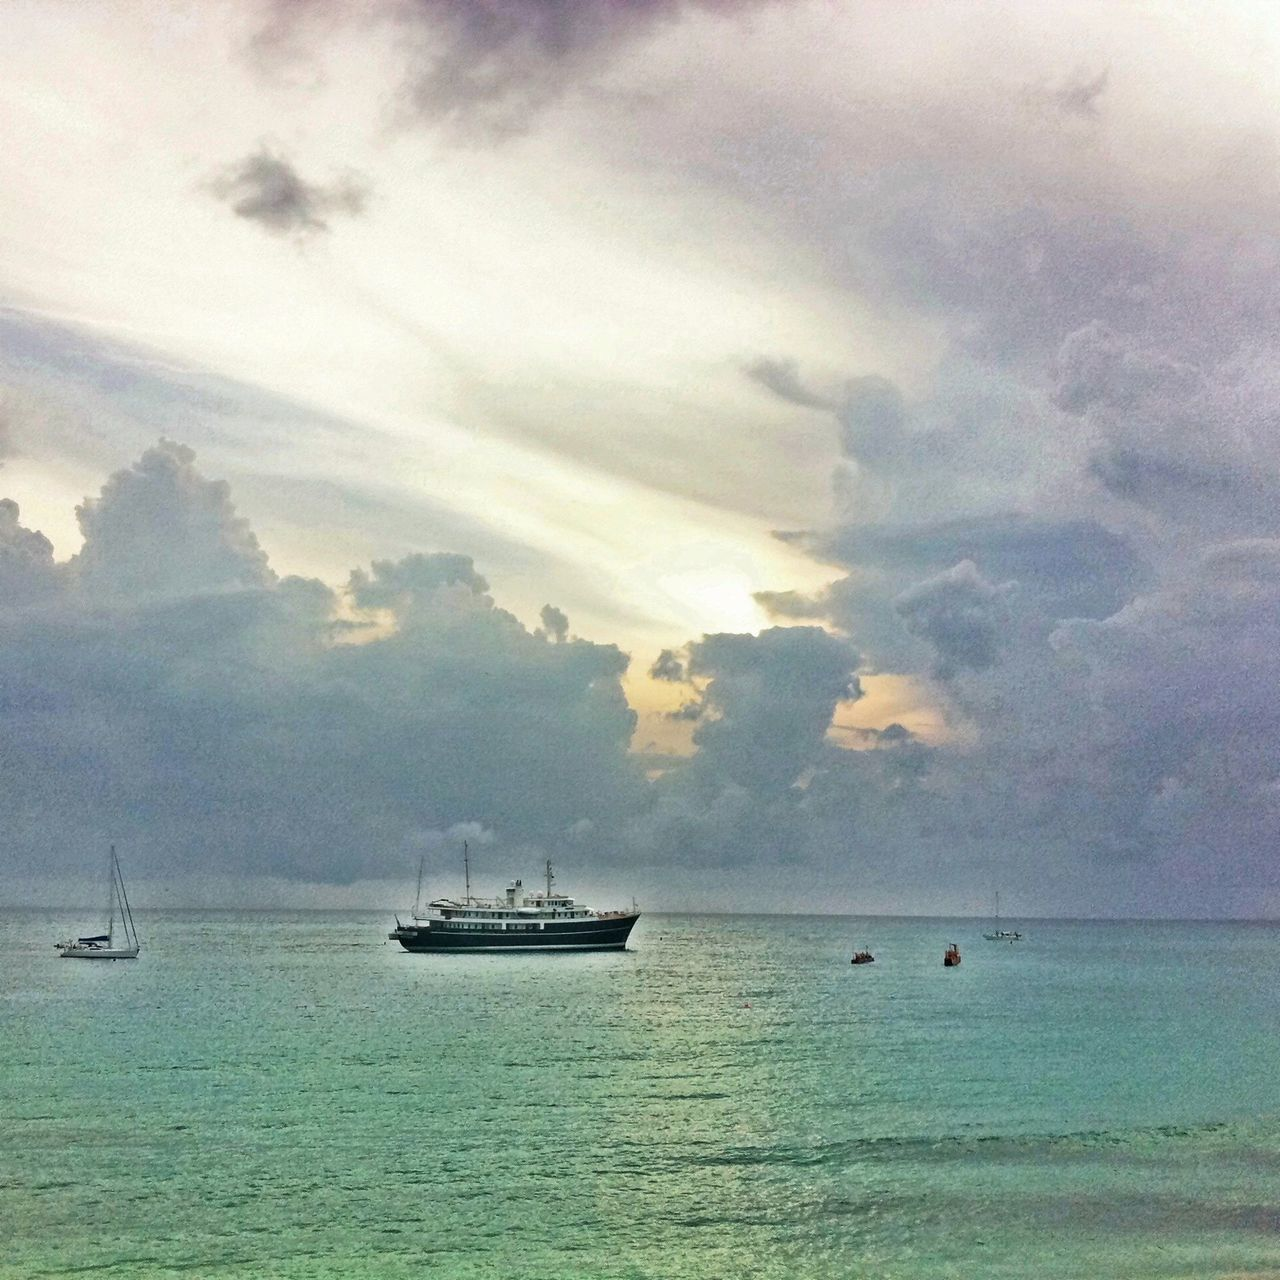 sea, water, nautical vessel, transportation, sky, nature, beauty in nature, scenics, cloud - sky, horizon over water, boat, mode of transport, tranquility, tranquil scene, outdoors, waterfront, no people, day, yacht